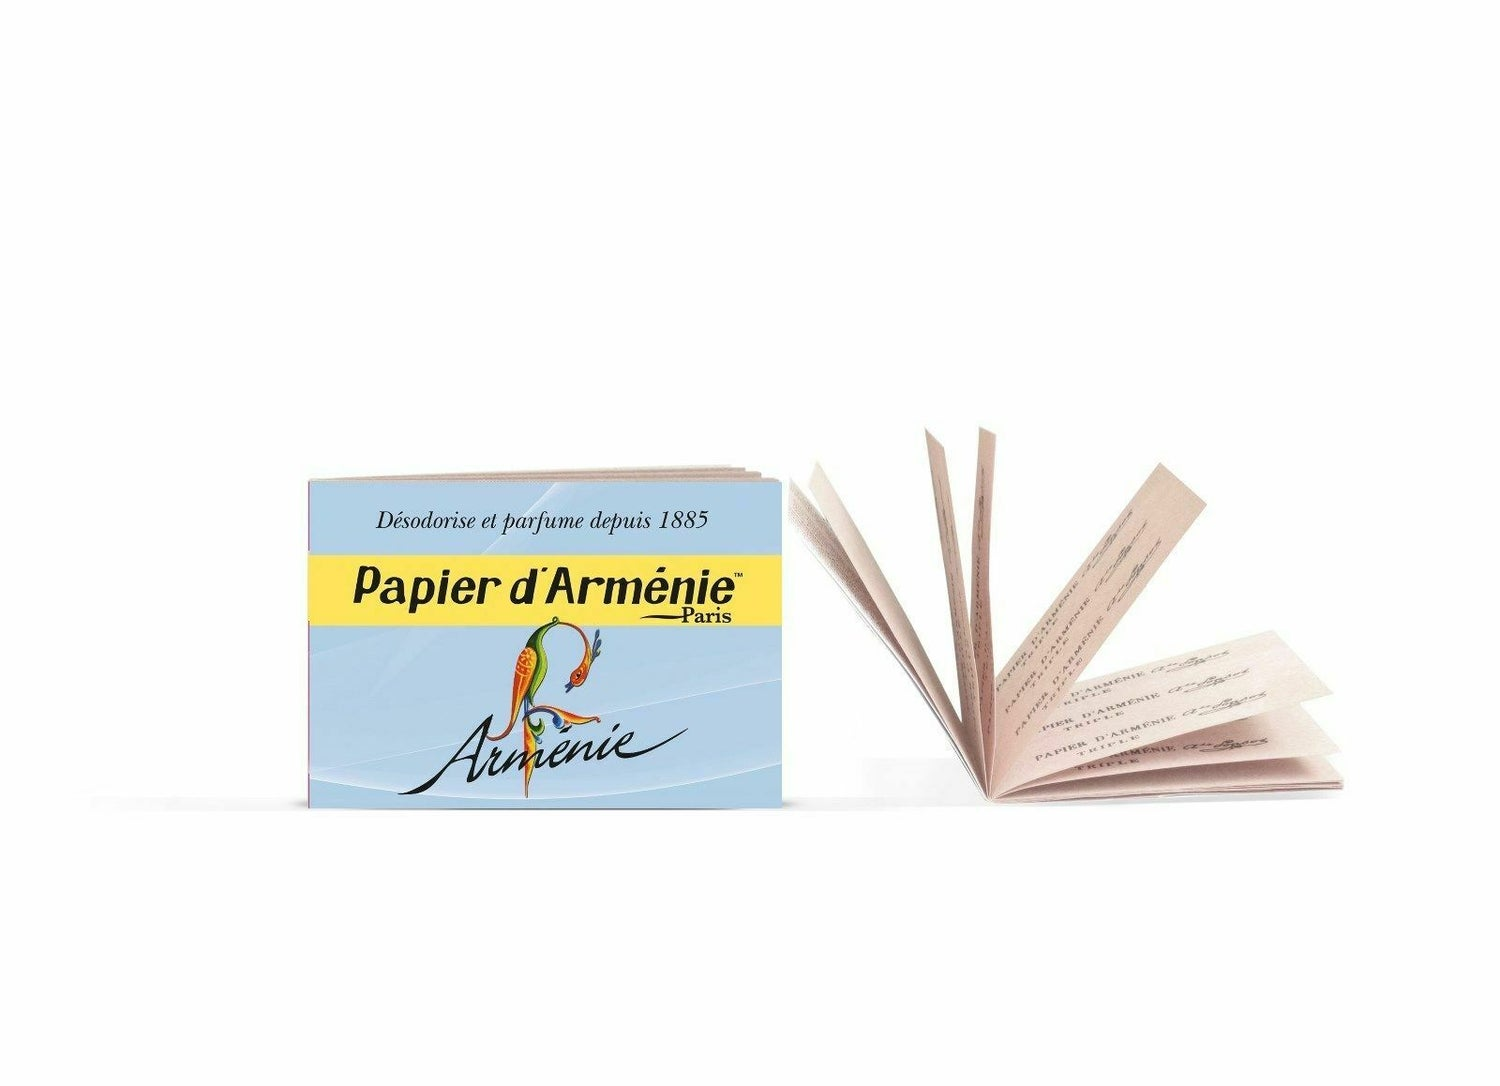 Image of NEW Papier d'Armenie Insent papers 1 booklet 36 leaflets imported from Paris